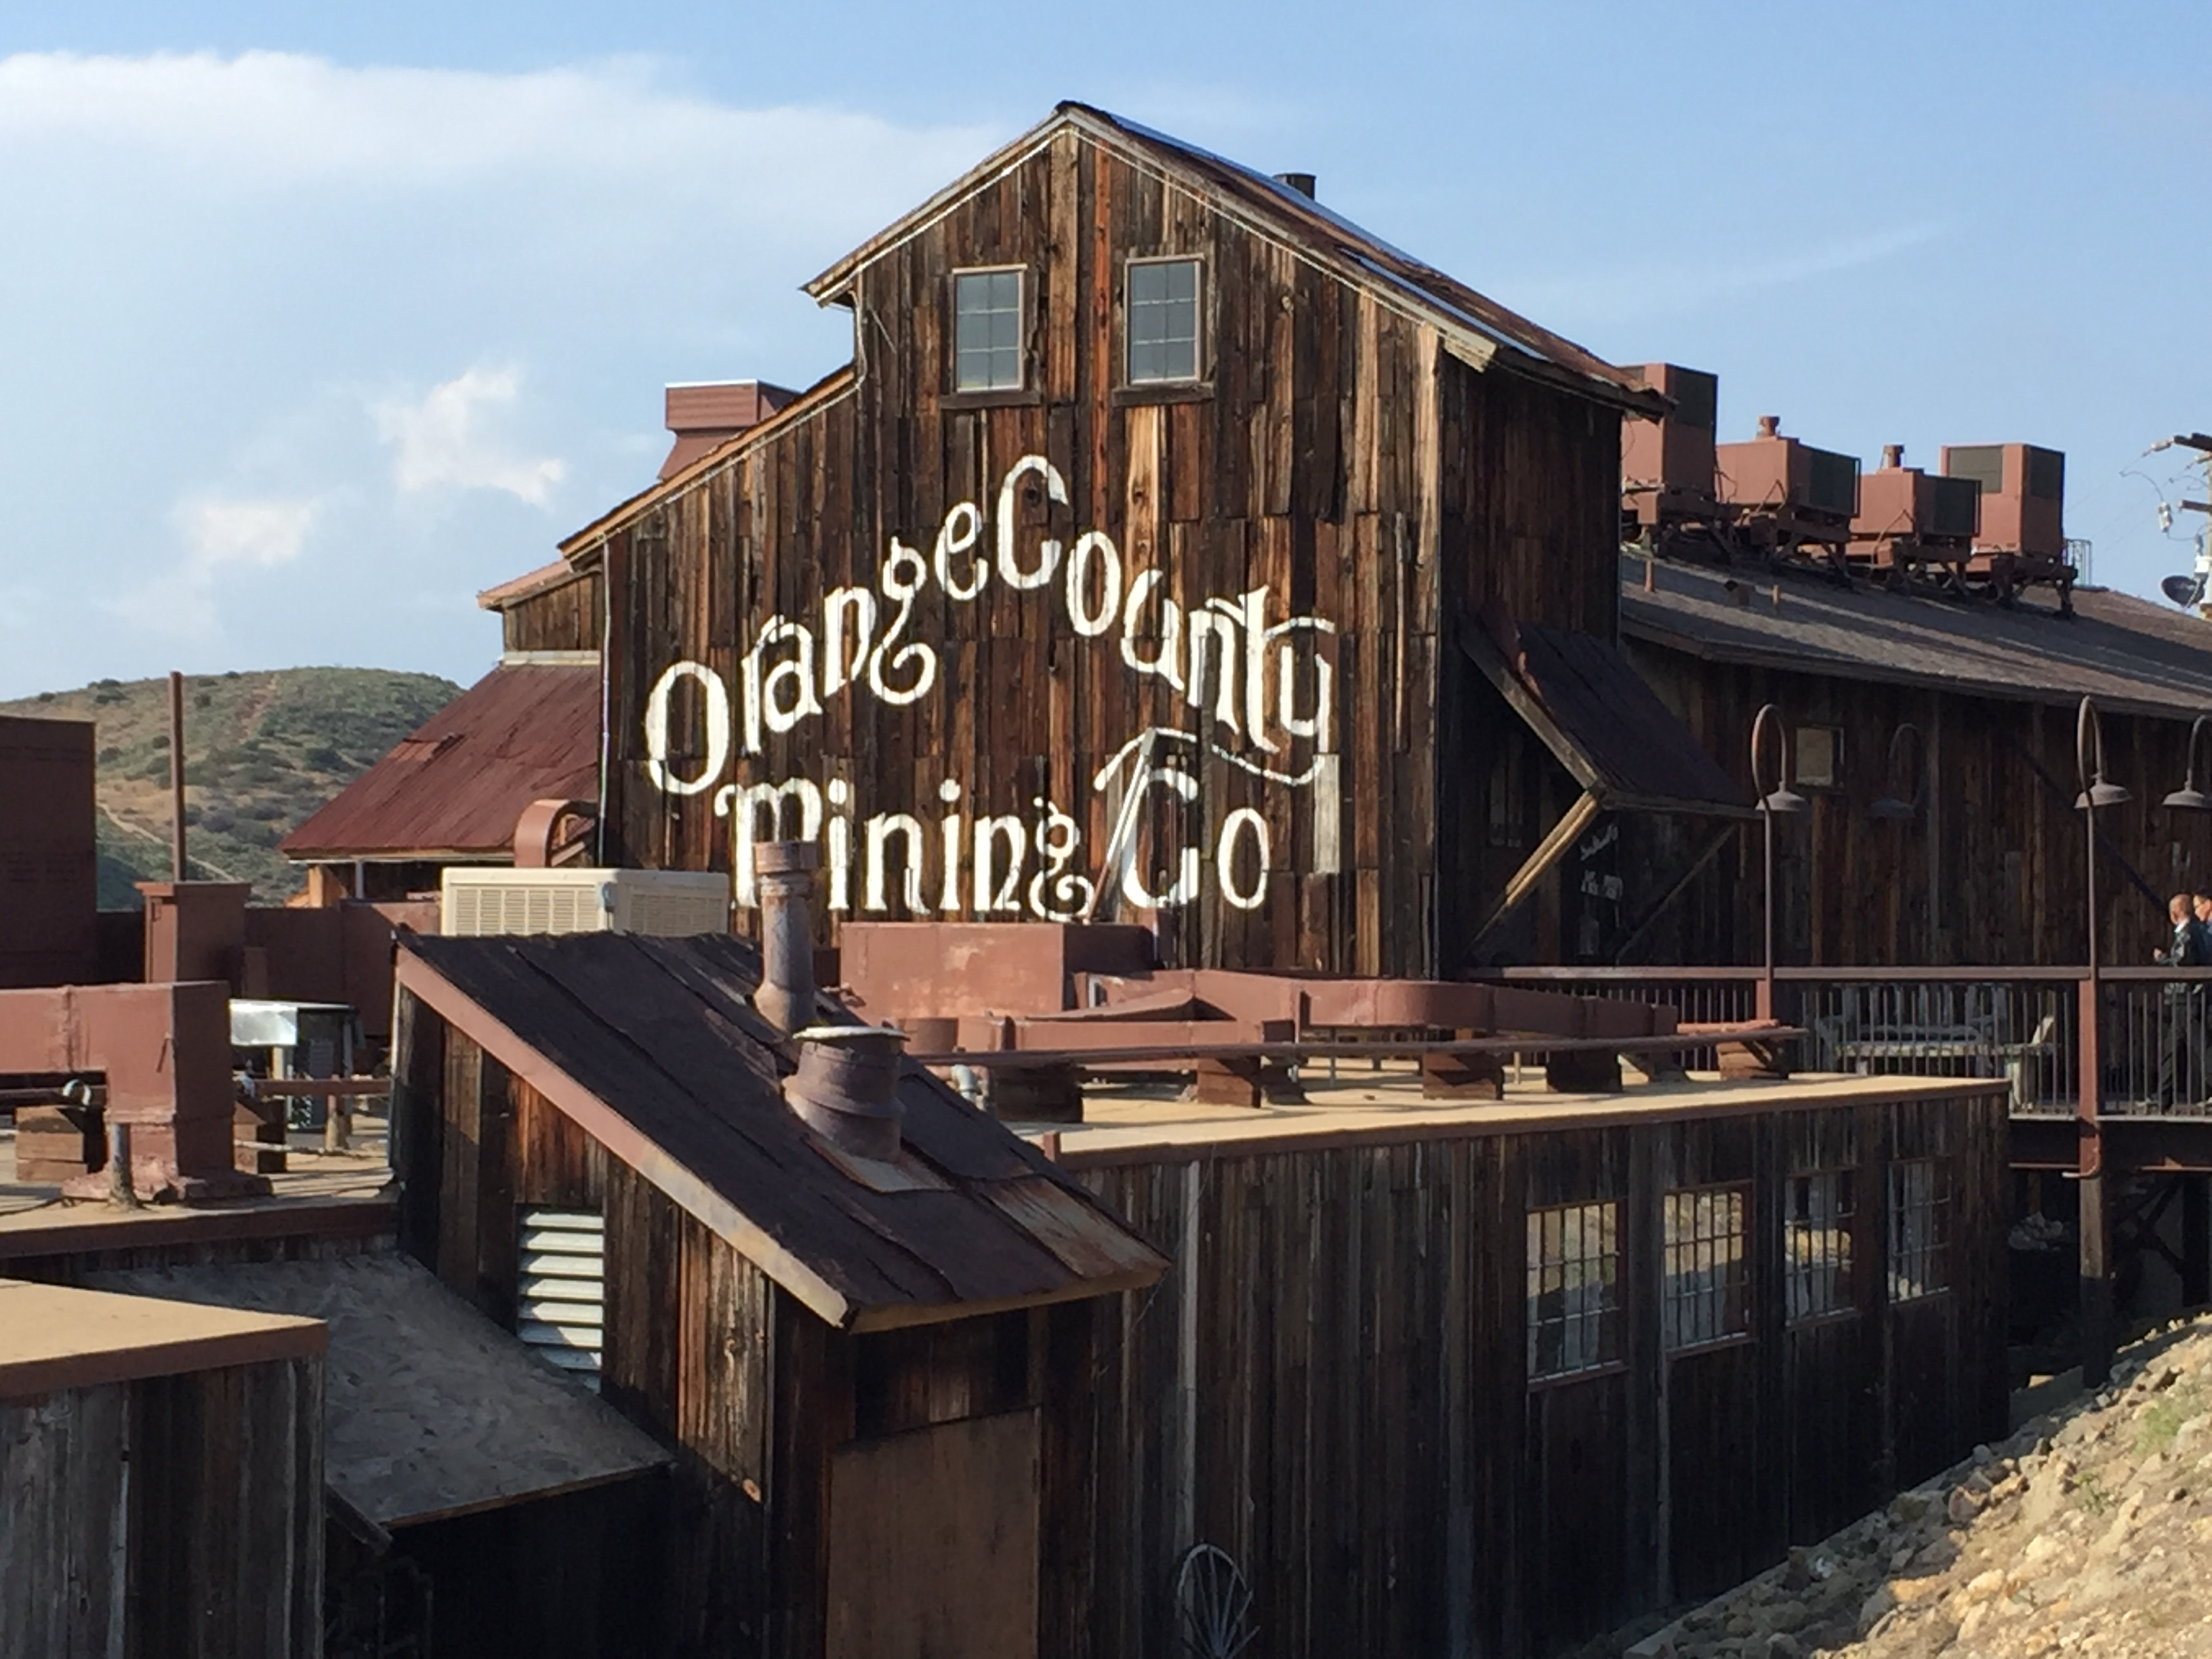 Orange County Mining Company